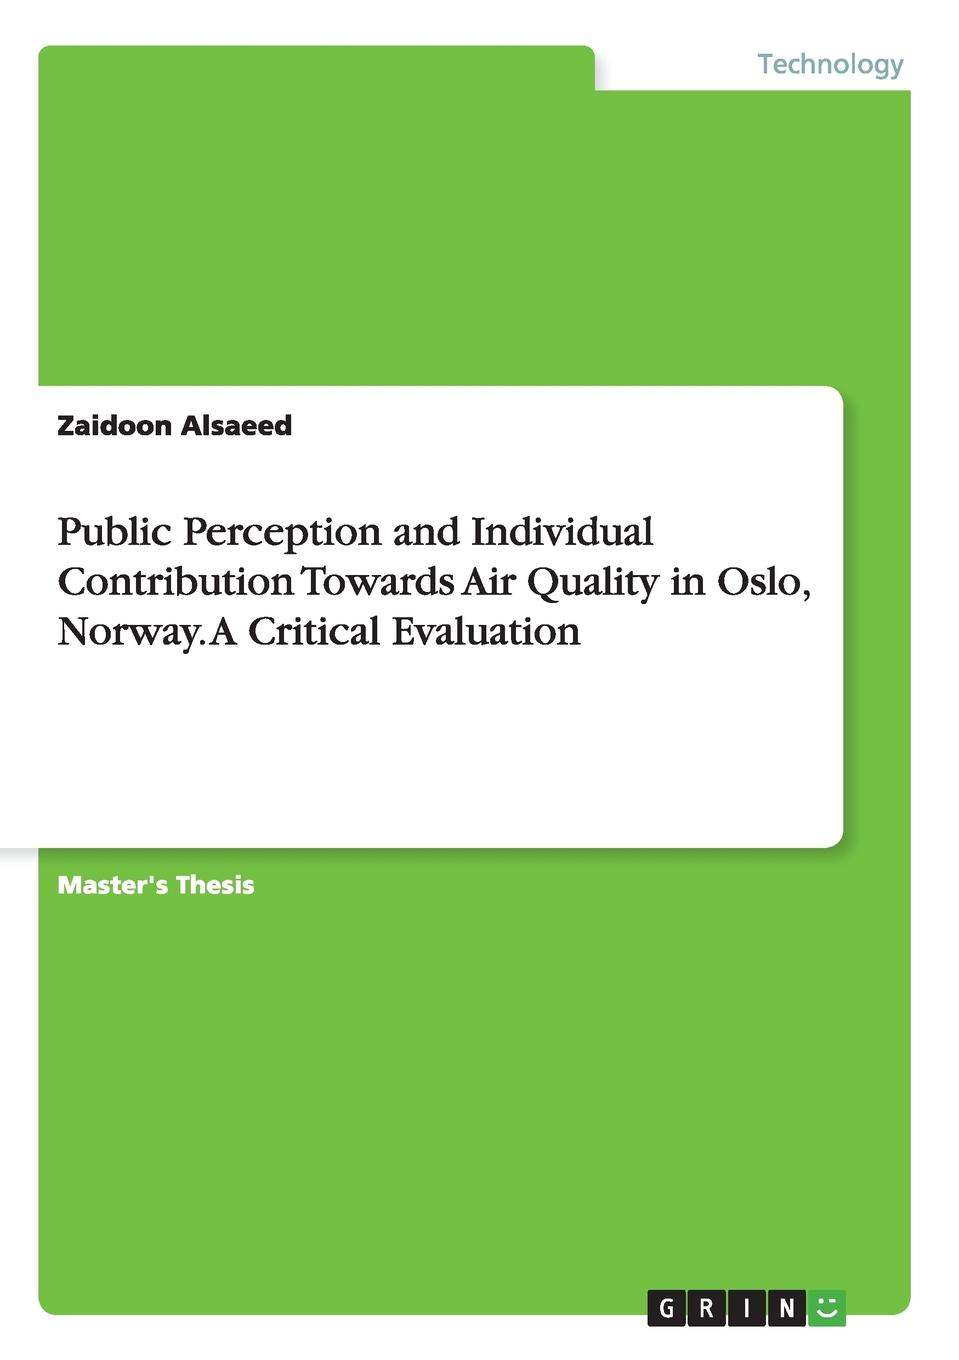 Zaidoon Alsaeed Public Perception and Individual Contribution Towards Air Quality in Oslo, Norway. A Critical Evaluation air tube 2 way 4mm dia quick joiner push in connector pneumatic fitting 10pcs